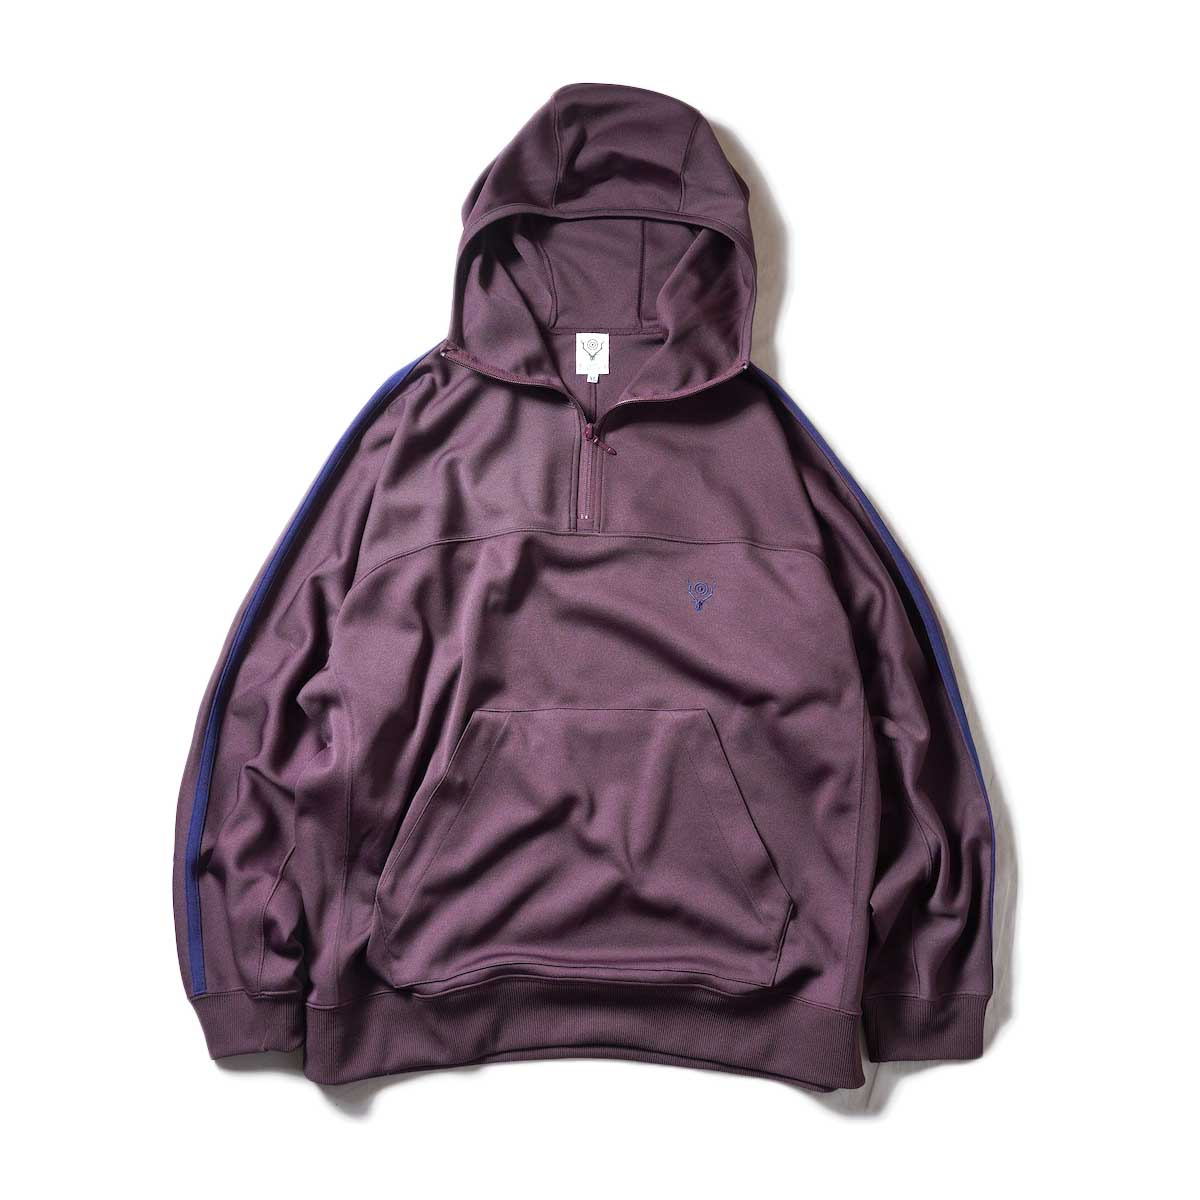 South2 West8 / Trainer Hoody - Poly Smooth (Burgundy)